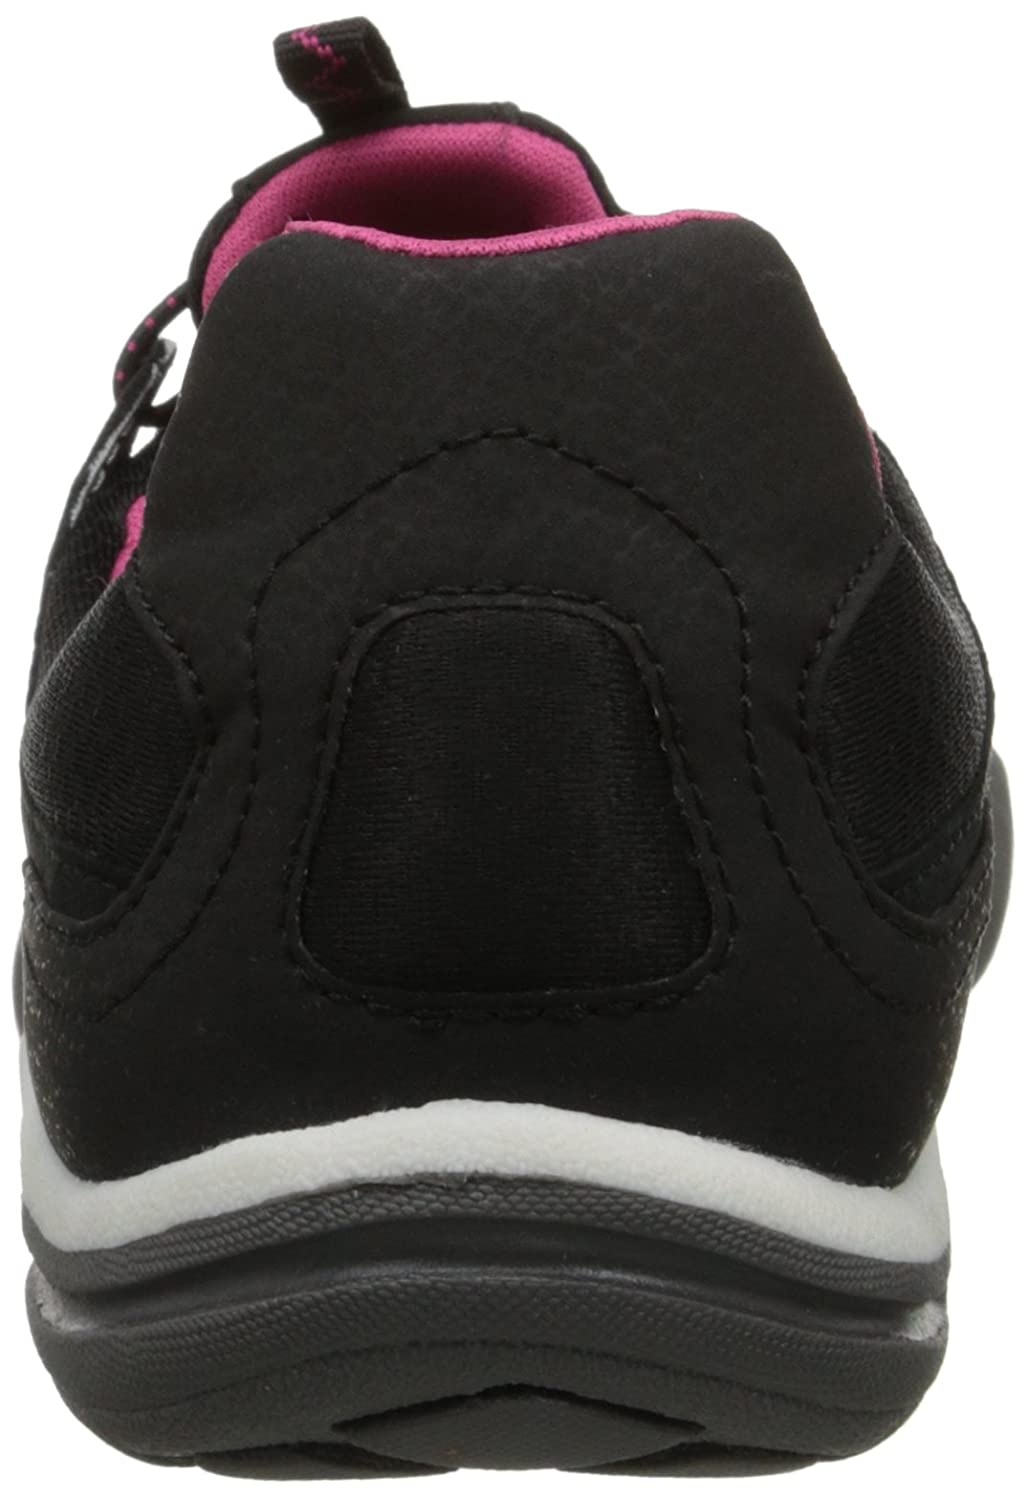 Clarks Womens Vailee Marble Flat